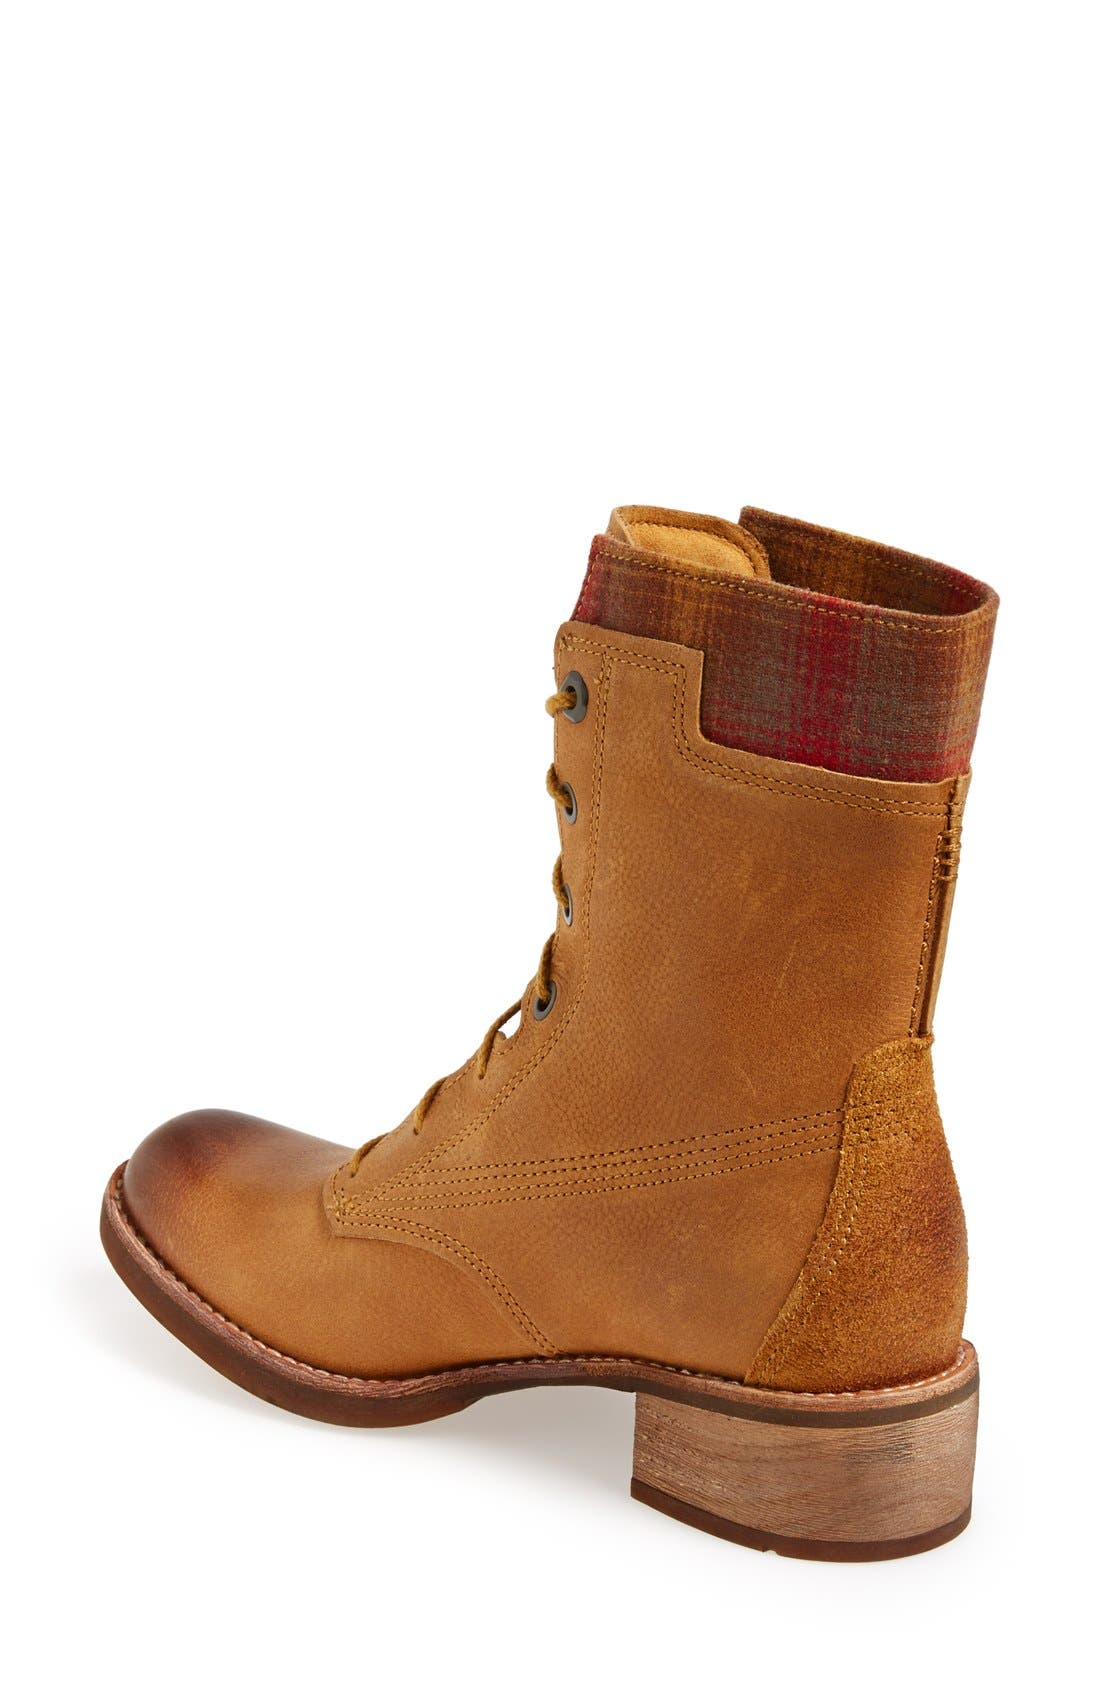 Alternate Image 2  - Timberland 'Whitermore' Mid Lace Up Boot (Women)